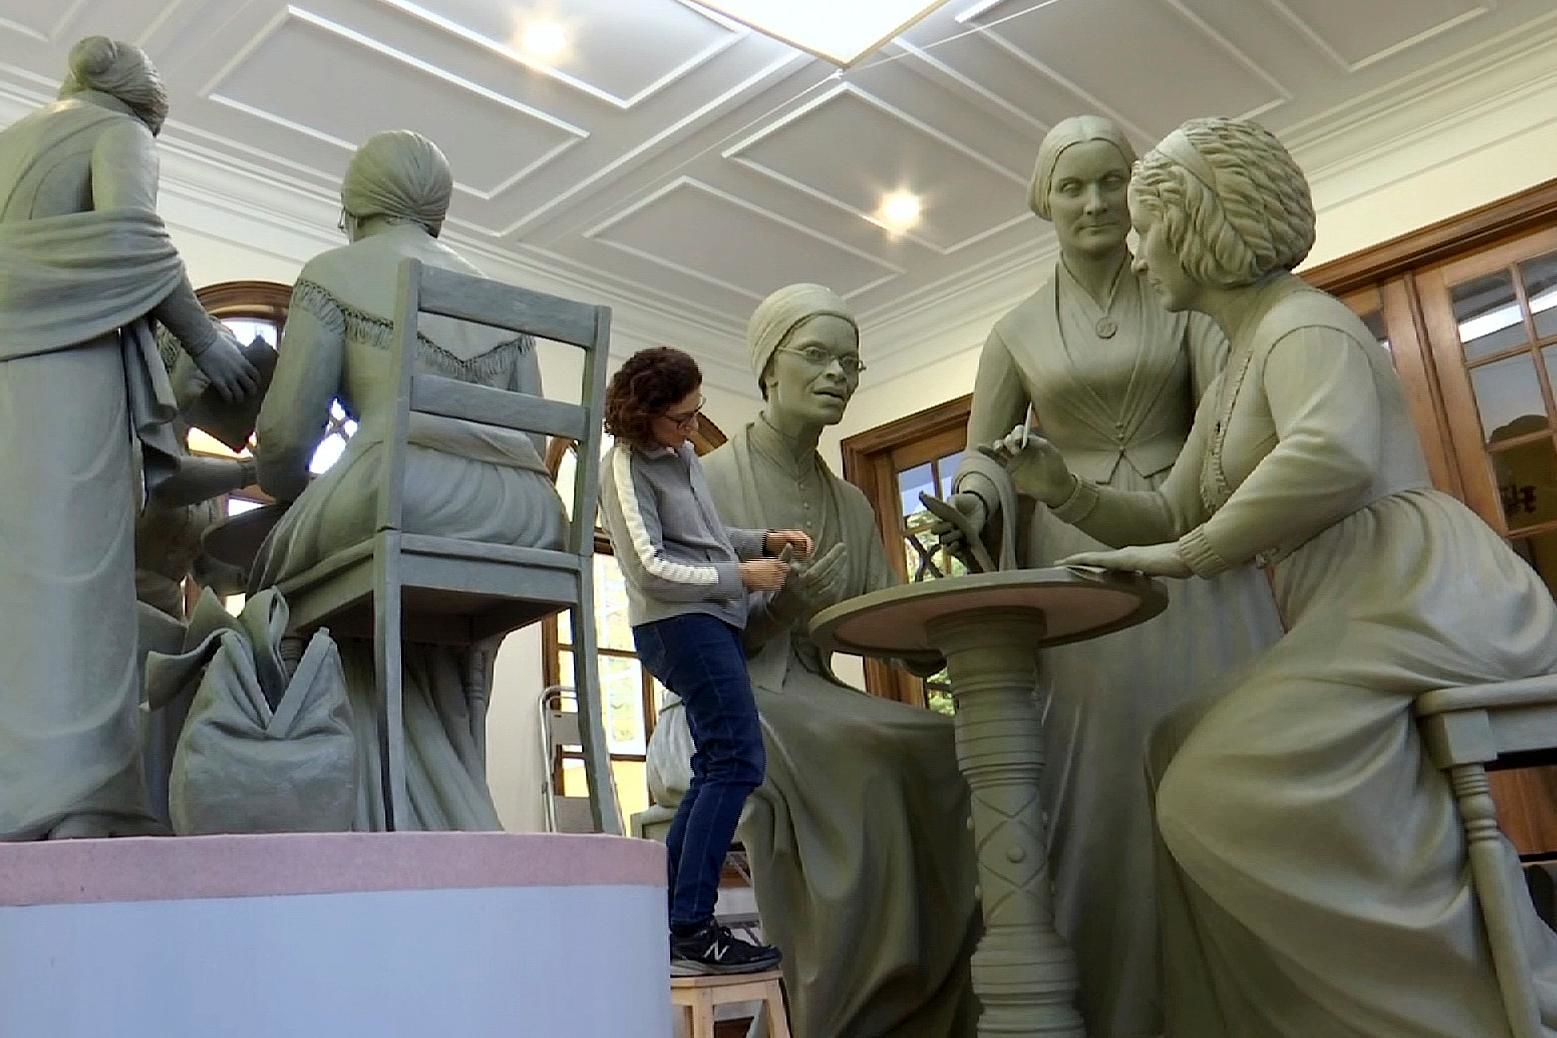 In this Nov. 4, 2019, still image from video, sculptor Meredith Bergmann works on the first women's statue that will be installed in New York's Central Park, in her studio in Ridgefield, Conn.{ } (AP Photo/Joseph Frederick)